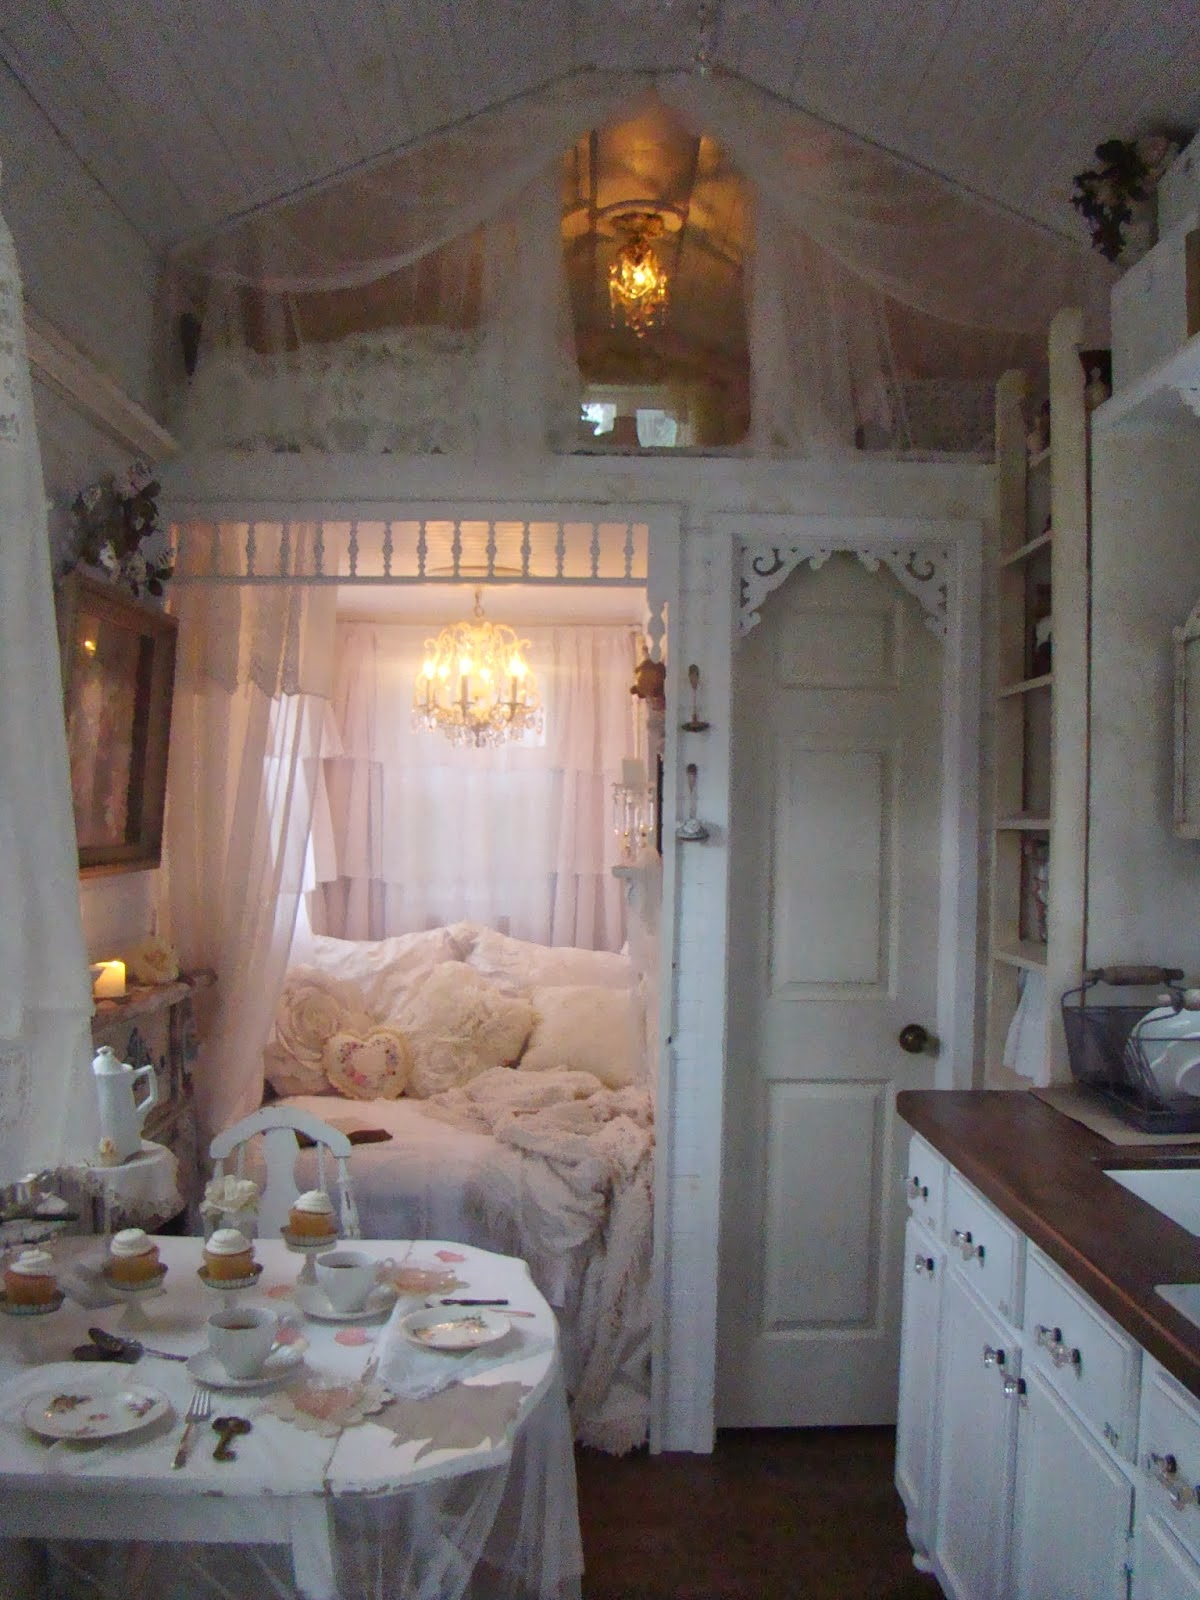 A Joyful Cottage: Living Large In Small Spaces - A Tour of ...